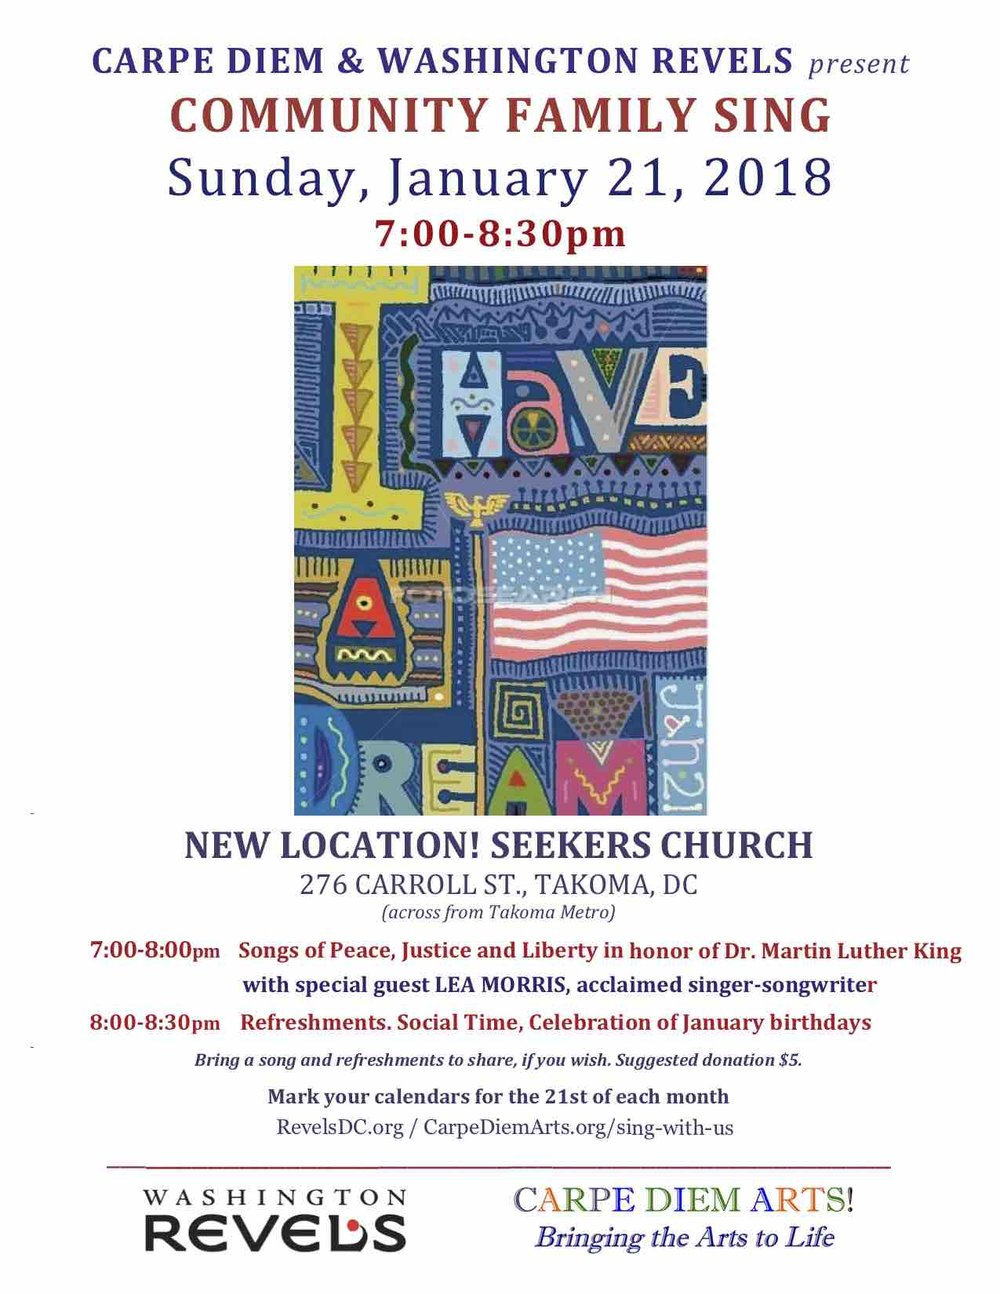 January 21 2018 Carpe Diem Revels Community Family Sing FLYER.jpg